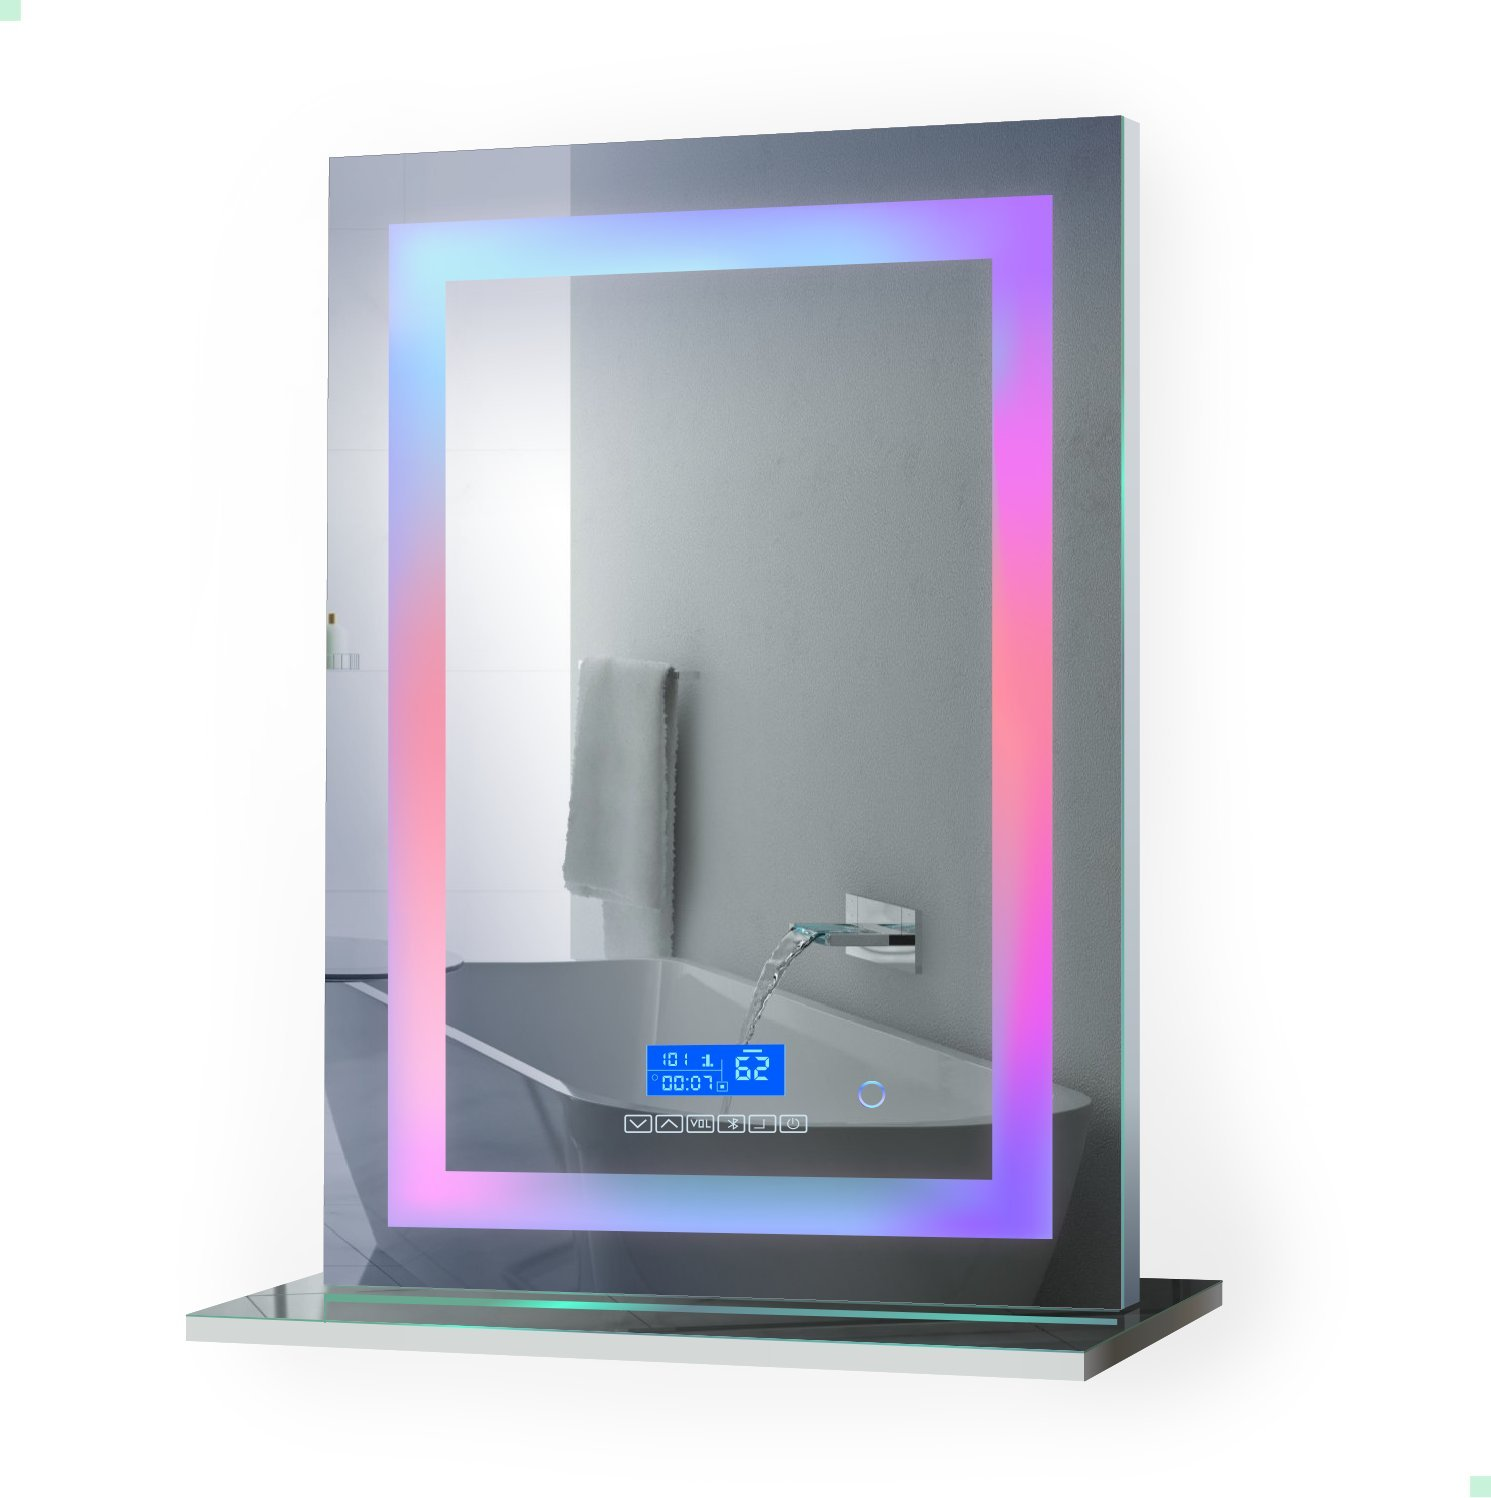 25 inch x 31 inch Lighted Chromotherapy Mirror With Remote | Includes Built in Bluetooth Speakers|Table Top Or Wall Mount | Plug-in